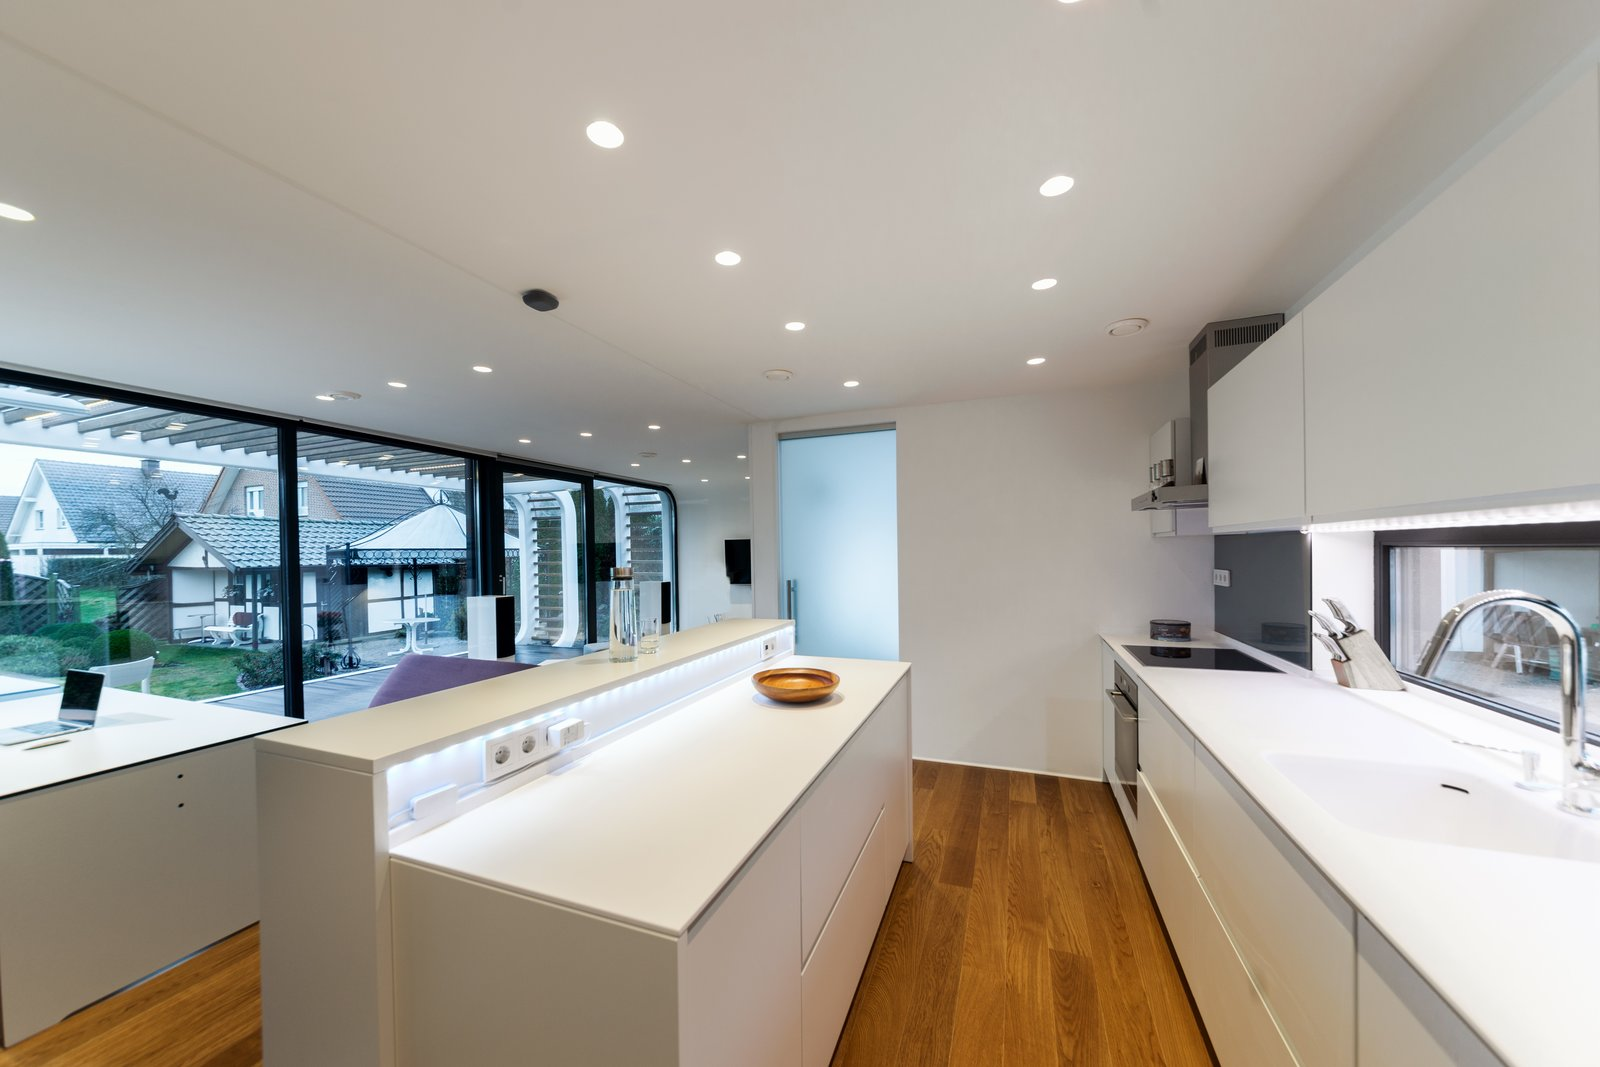 Kitchen, White Cabinet, Medium Hardwood Floor, Drop In Sink, Cooktops, Range Hood, Wall Oven, and Recessed Lighting Coodo 64 comes equipped with a full kitchen, bathroom, and bedroom.  Photo 3 of 12 in Meet the Prefab Unit That's Smart, Mobile, and Sustainable